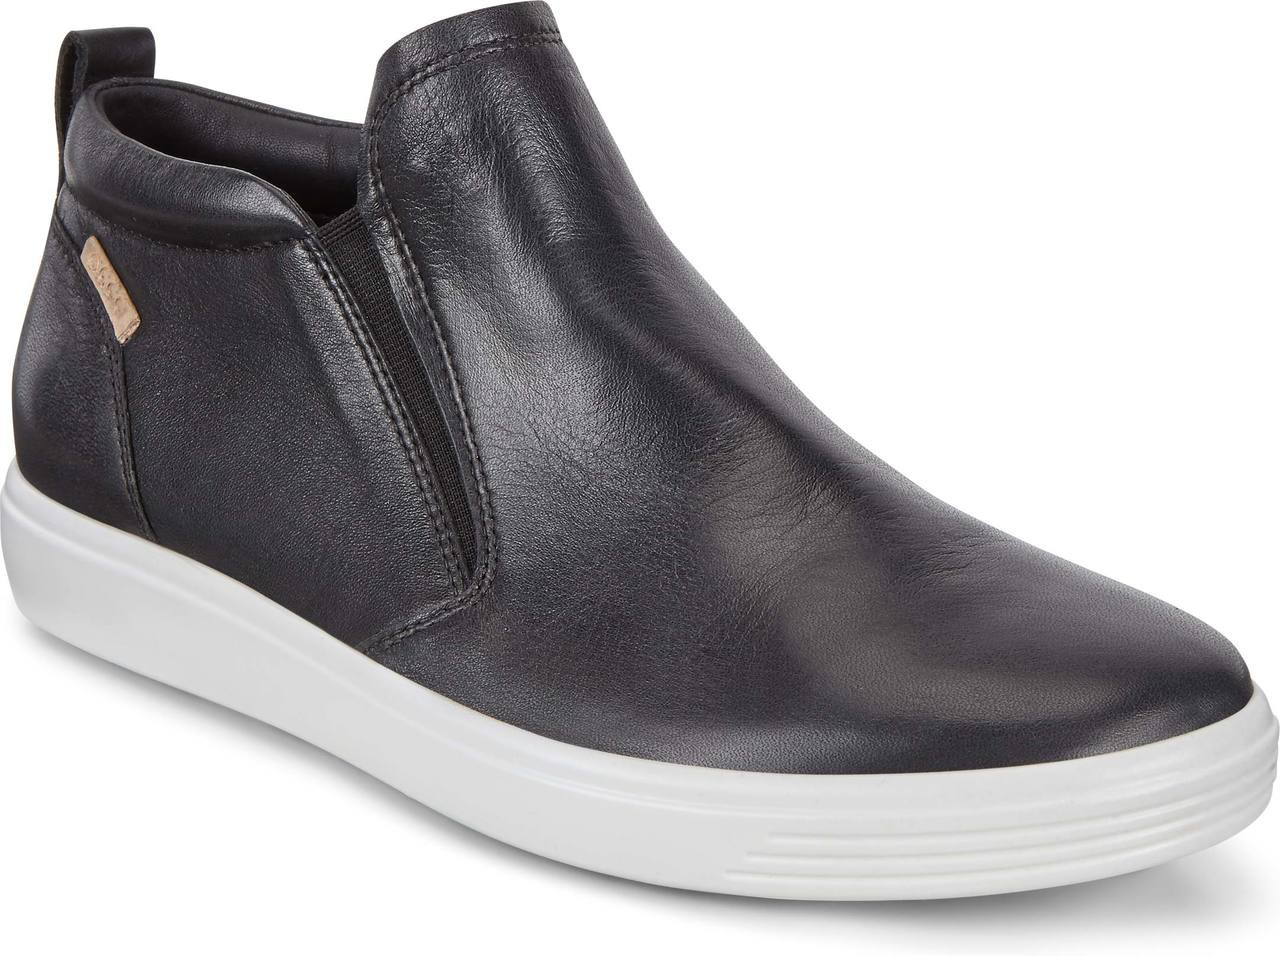 618fe296 ECCO Women's Soft 7 Ankle Boot